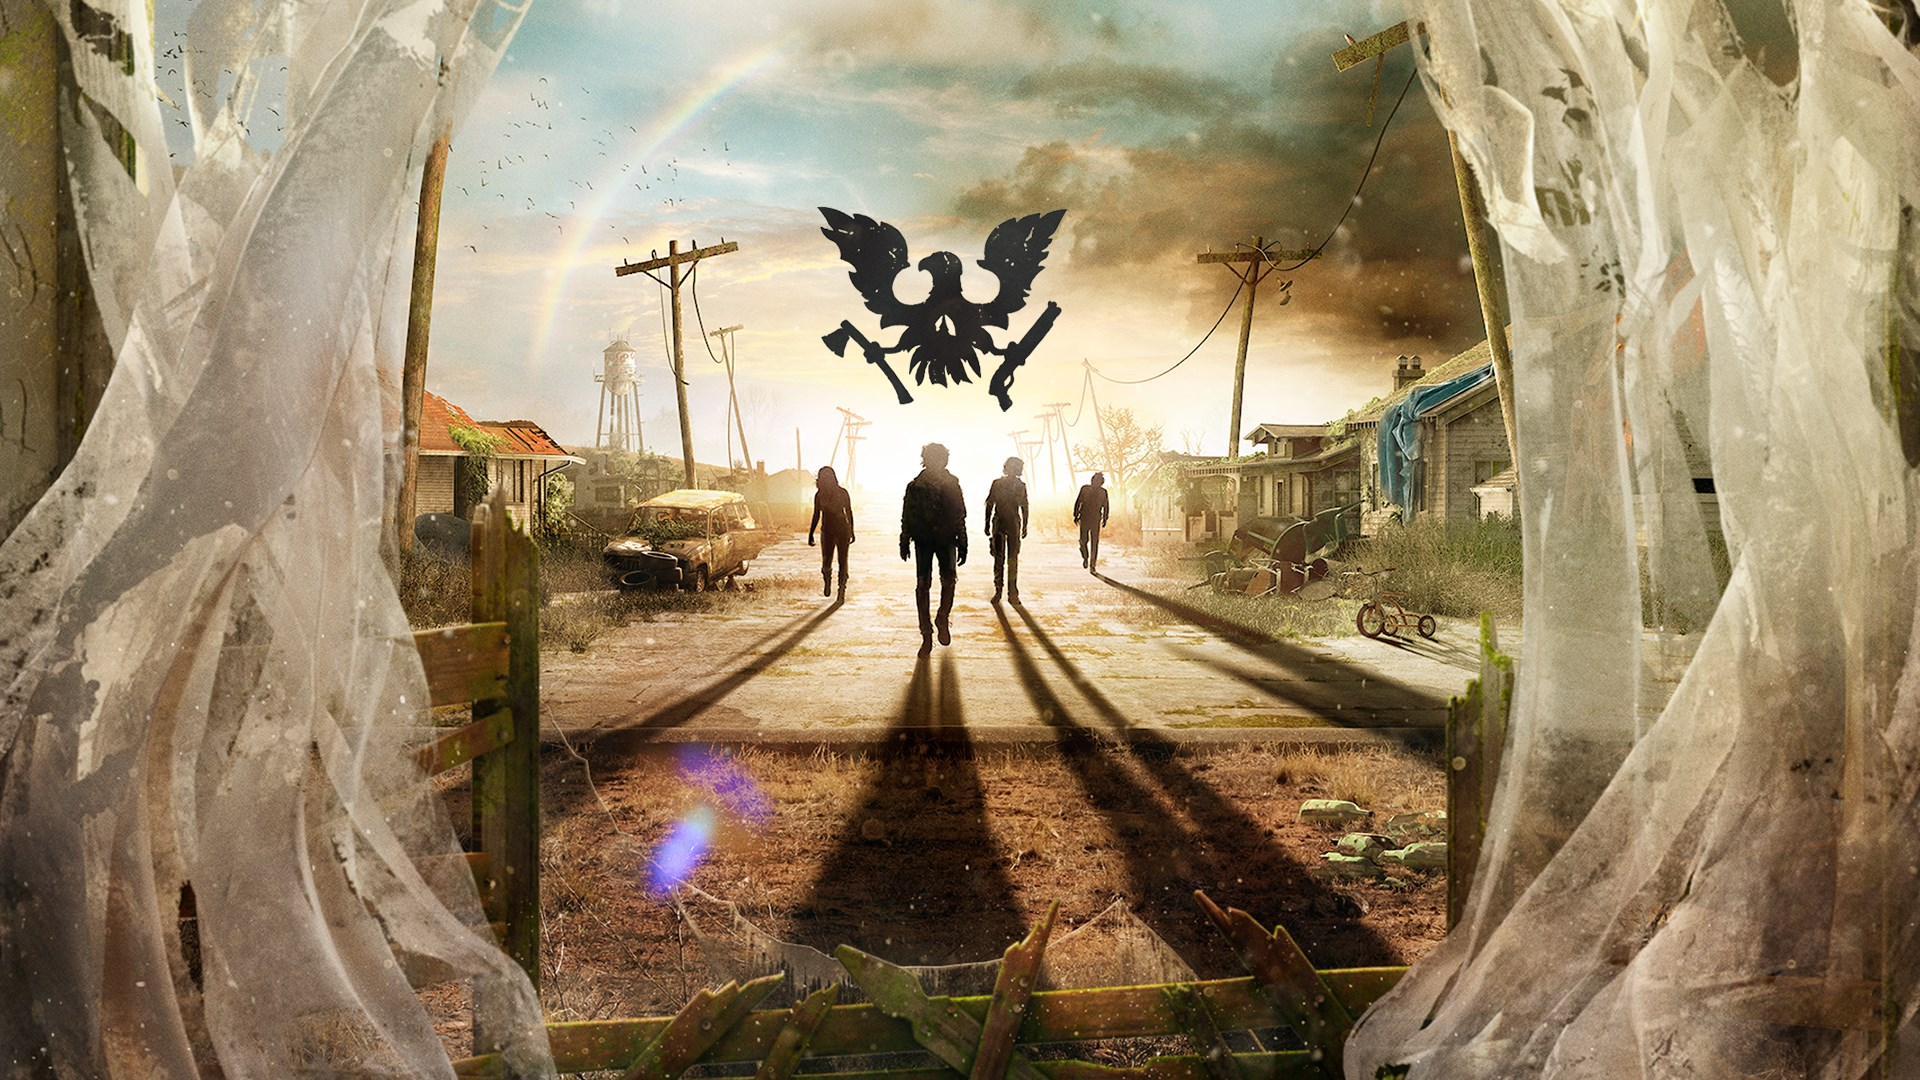 State of Decay 2 Survival game